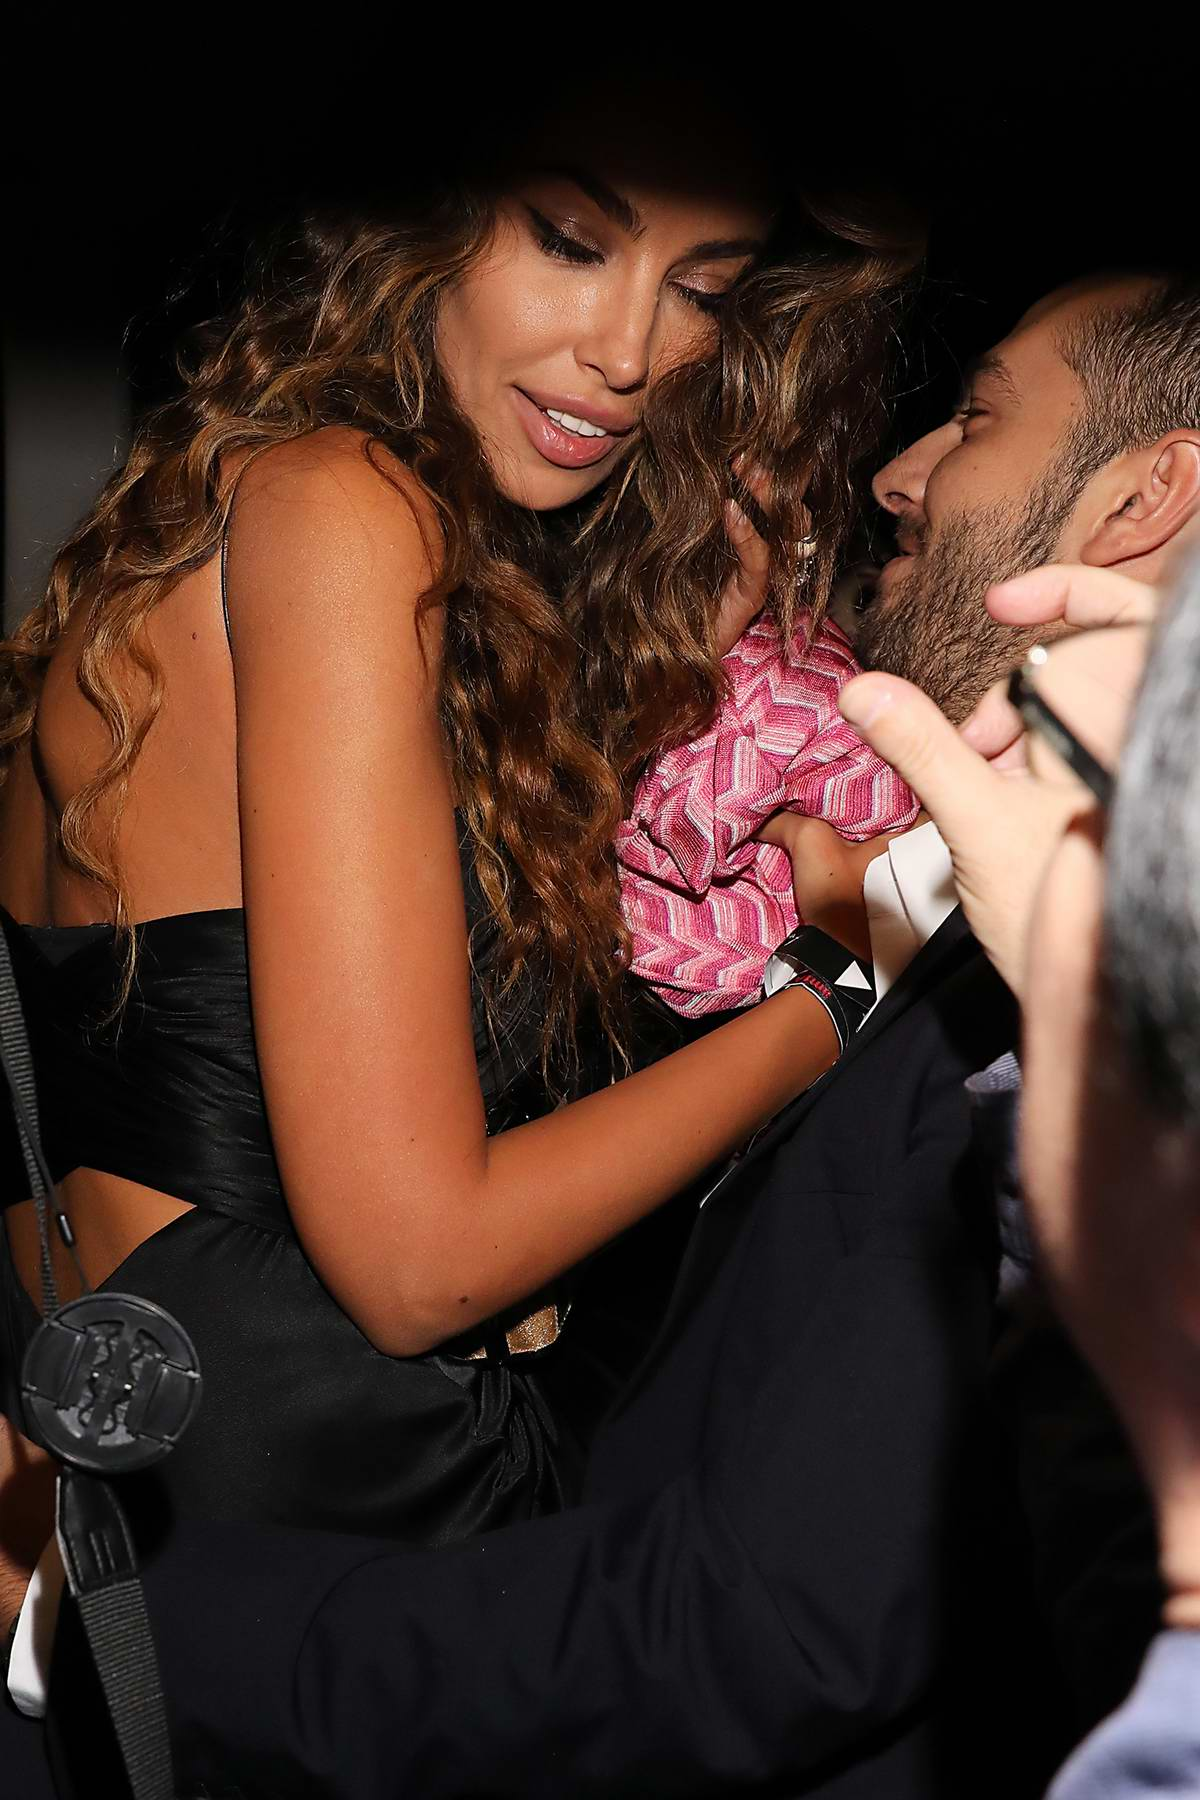 Madalina Ghenea kissing Matei Stratan after the amfAR Gala, spring summer 2018 during Milan fashion week, Italy